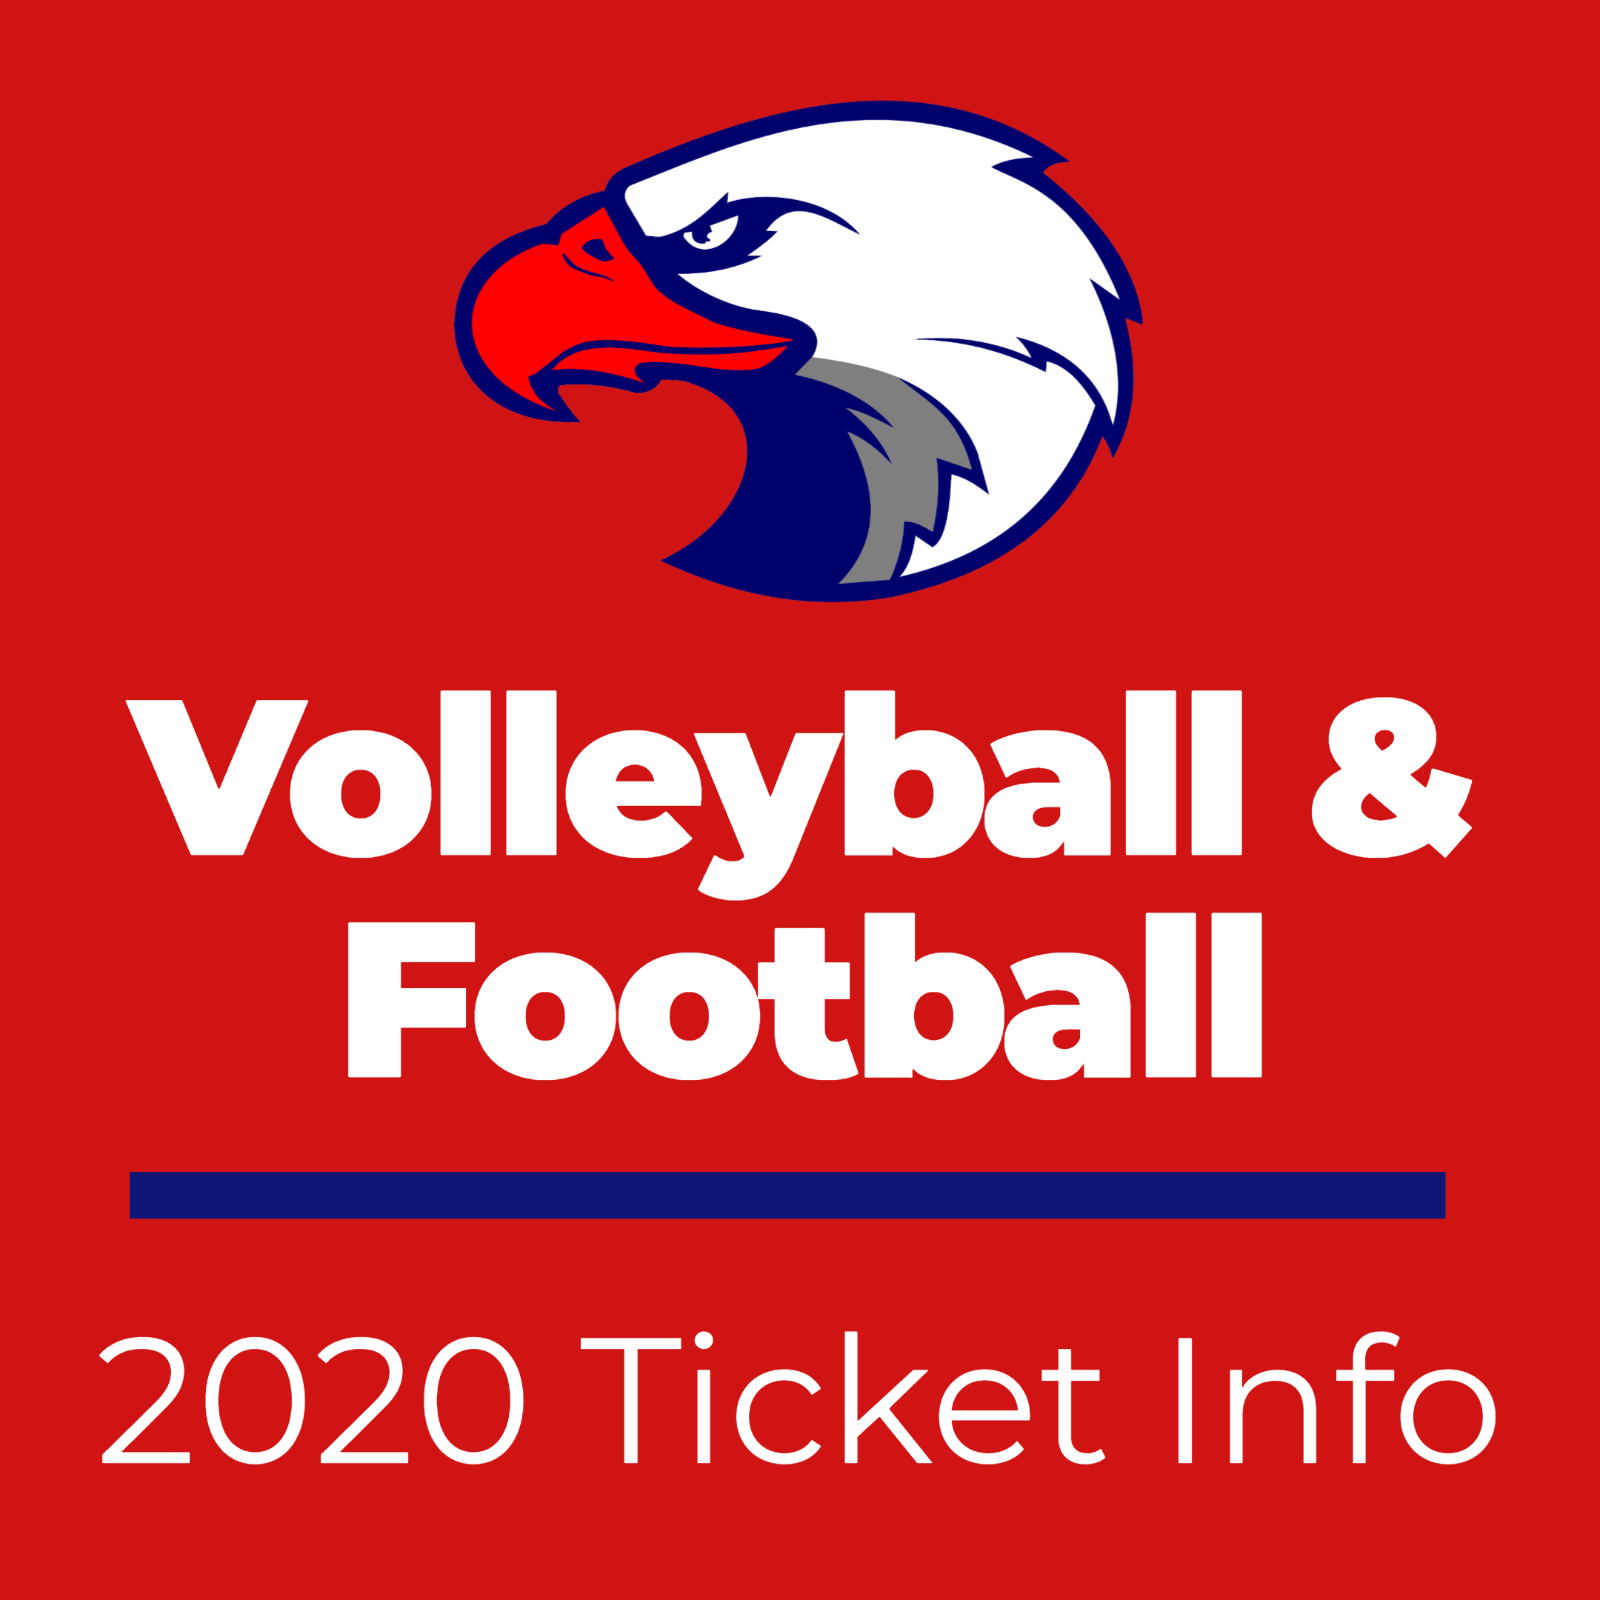 Volleyball and Football Ticket Info